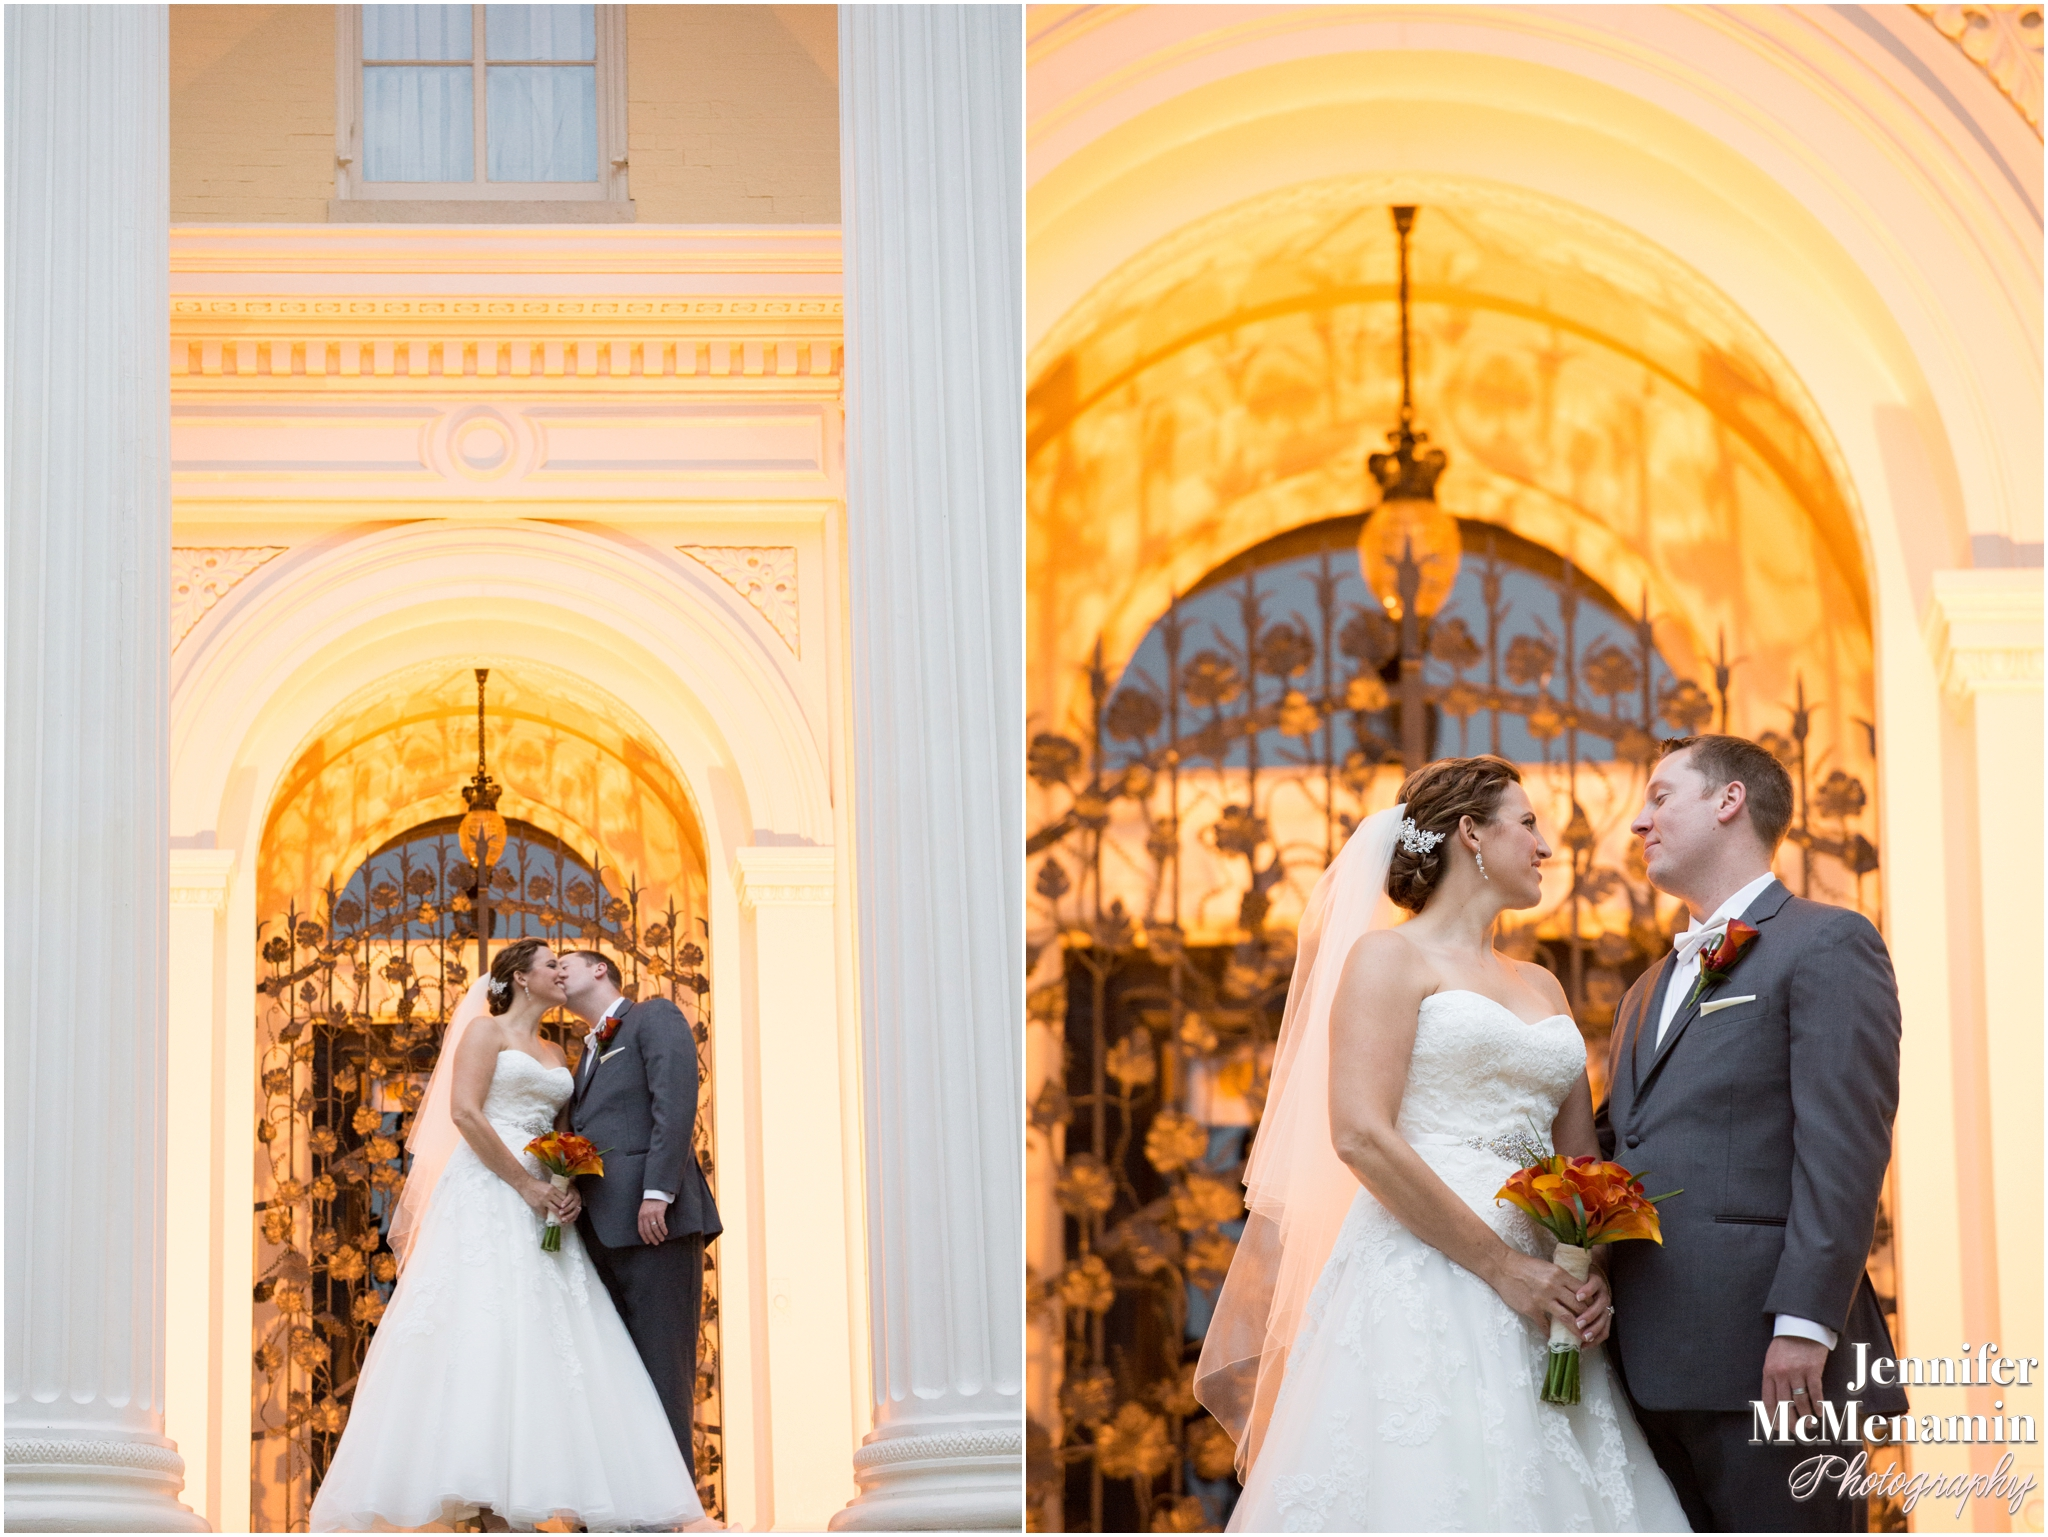 066-HenningMiller_02422-0498_JenniferMcMenaminPhotography_Evergreen-Museum-And-Carriage-House_Evergreen-wedding_Baltimore-wedding-photographer_Baltimore-wedding-photography